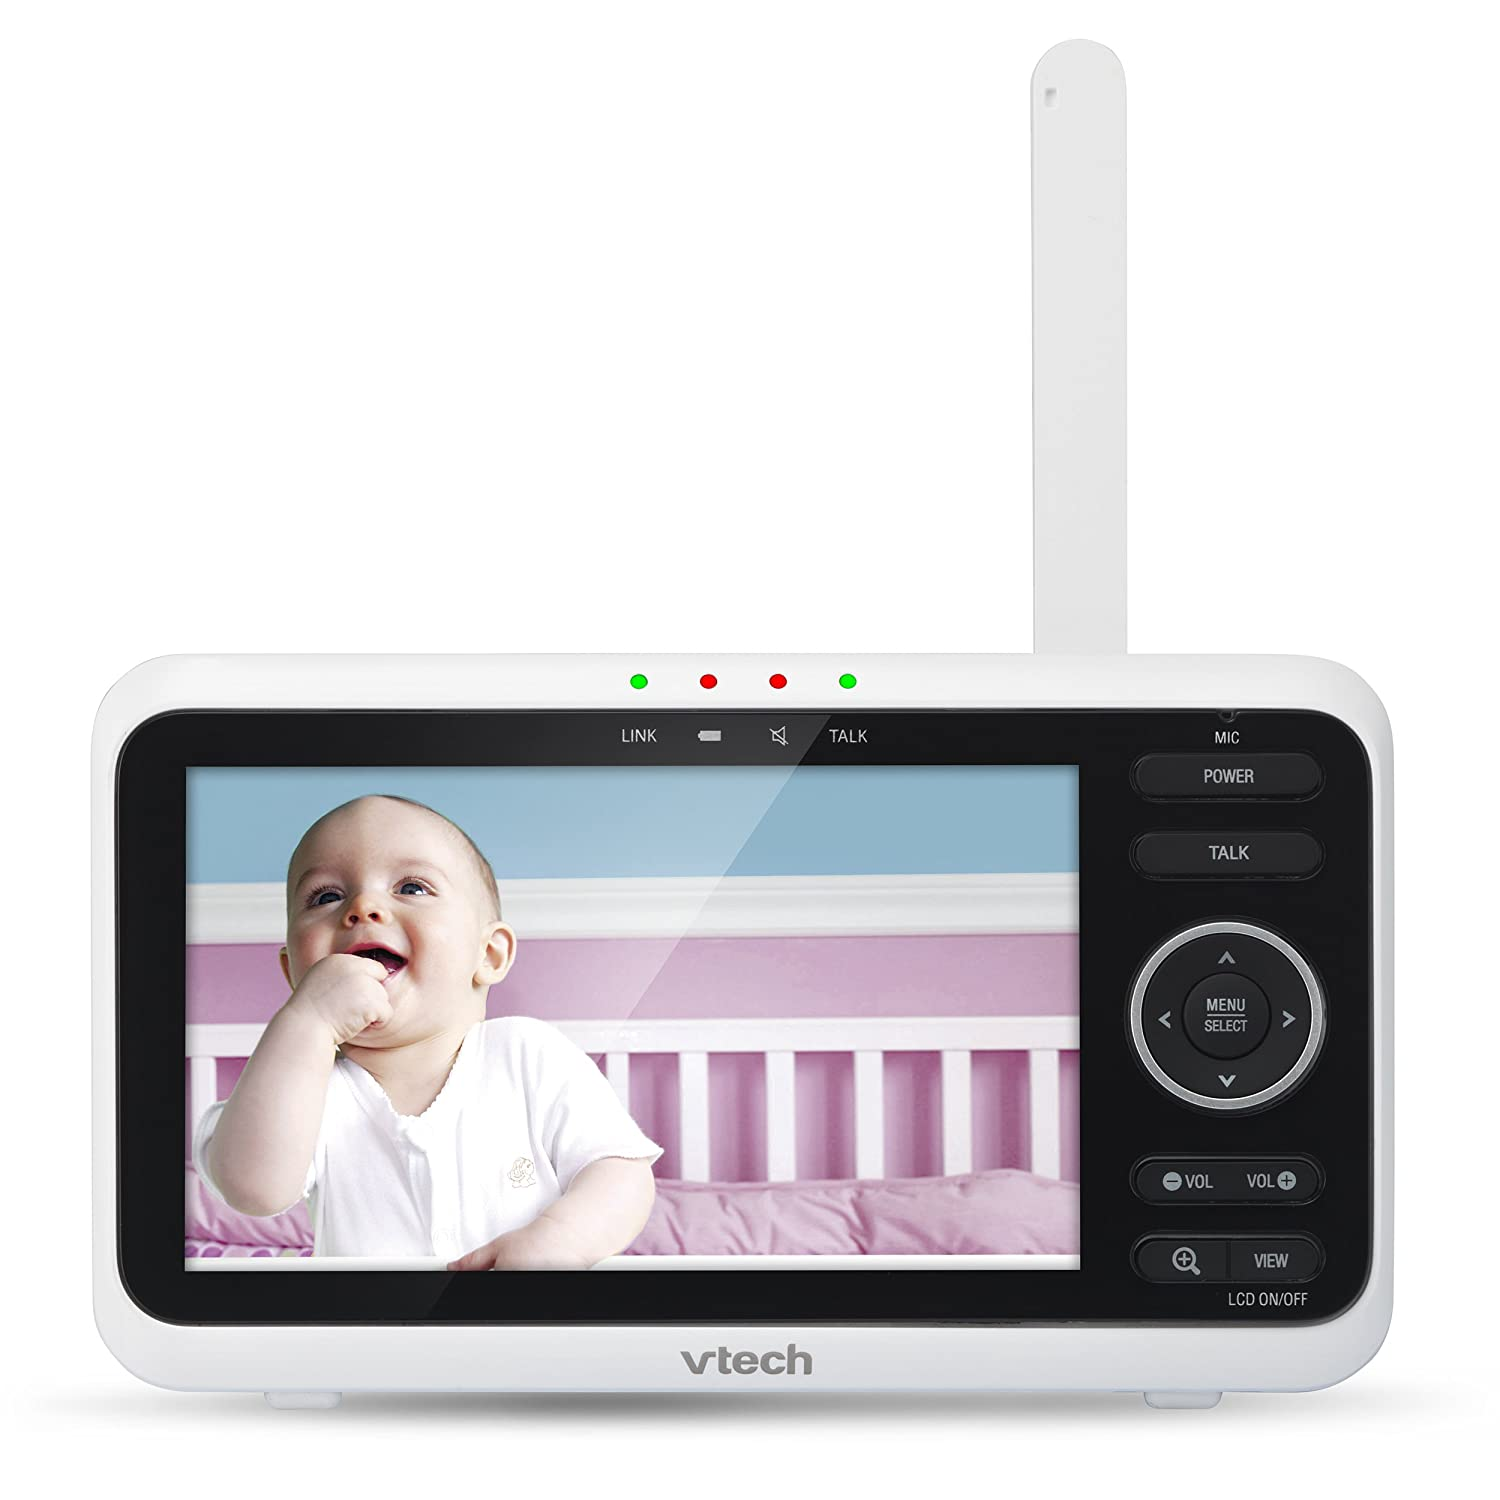 VTech VM350-2 High-Resolution Night Vision 5-inch Screen Video Baby Monitor with 2 Cameras- 2 Way Talk Soothing Sounds and Lullabies